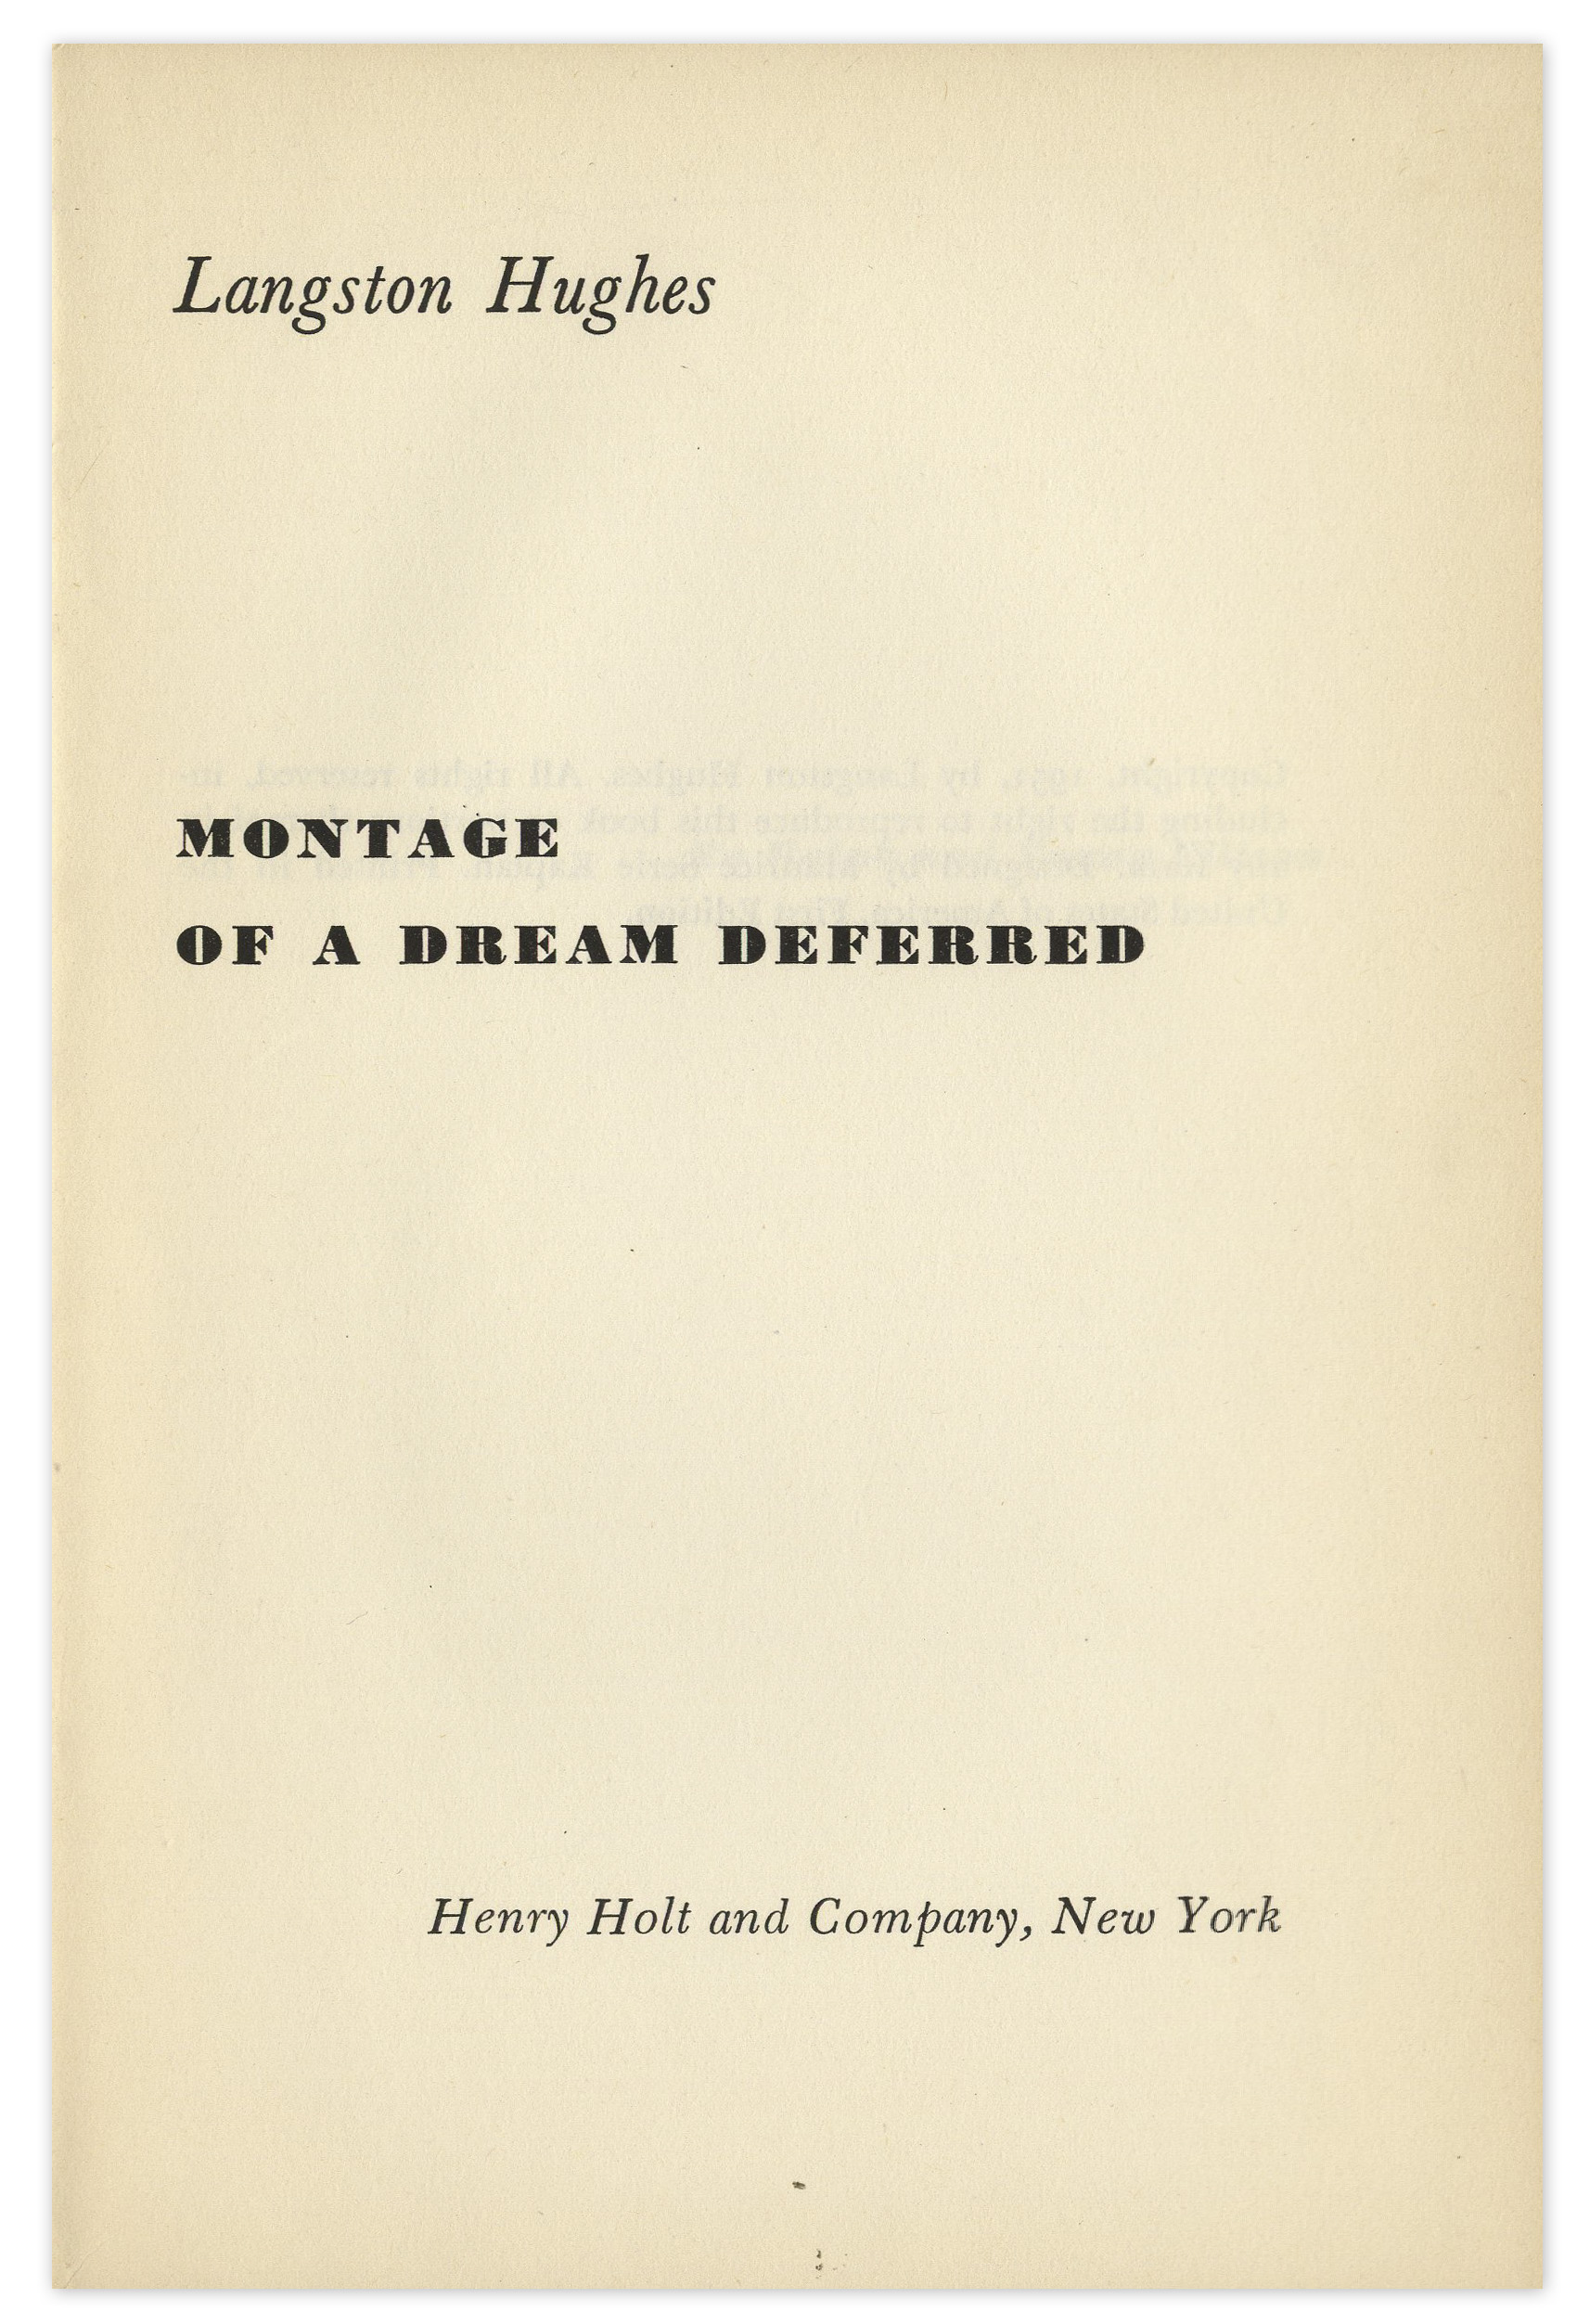 understanding james longston hughes idea of the dream deferred Montage of a dream deferred is a book-length poem suite published by langston hughes in 1951 its jazz poetry style focuses on descriptions of harlem (a neighborhood of new york city) and its mostly african-american inhabitants.